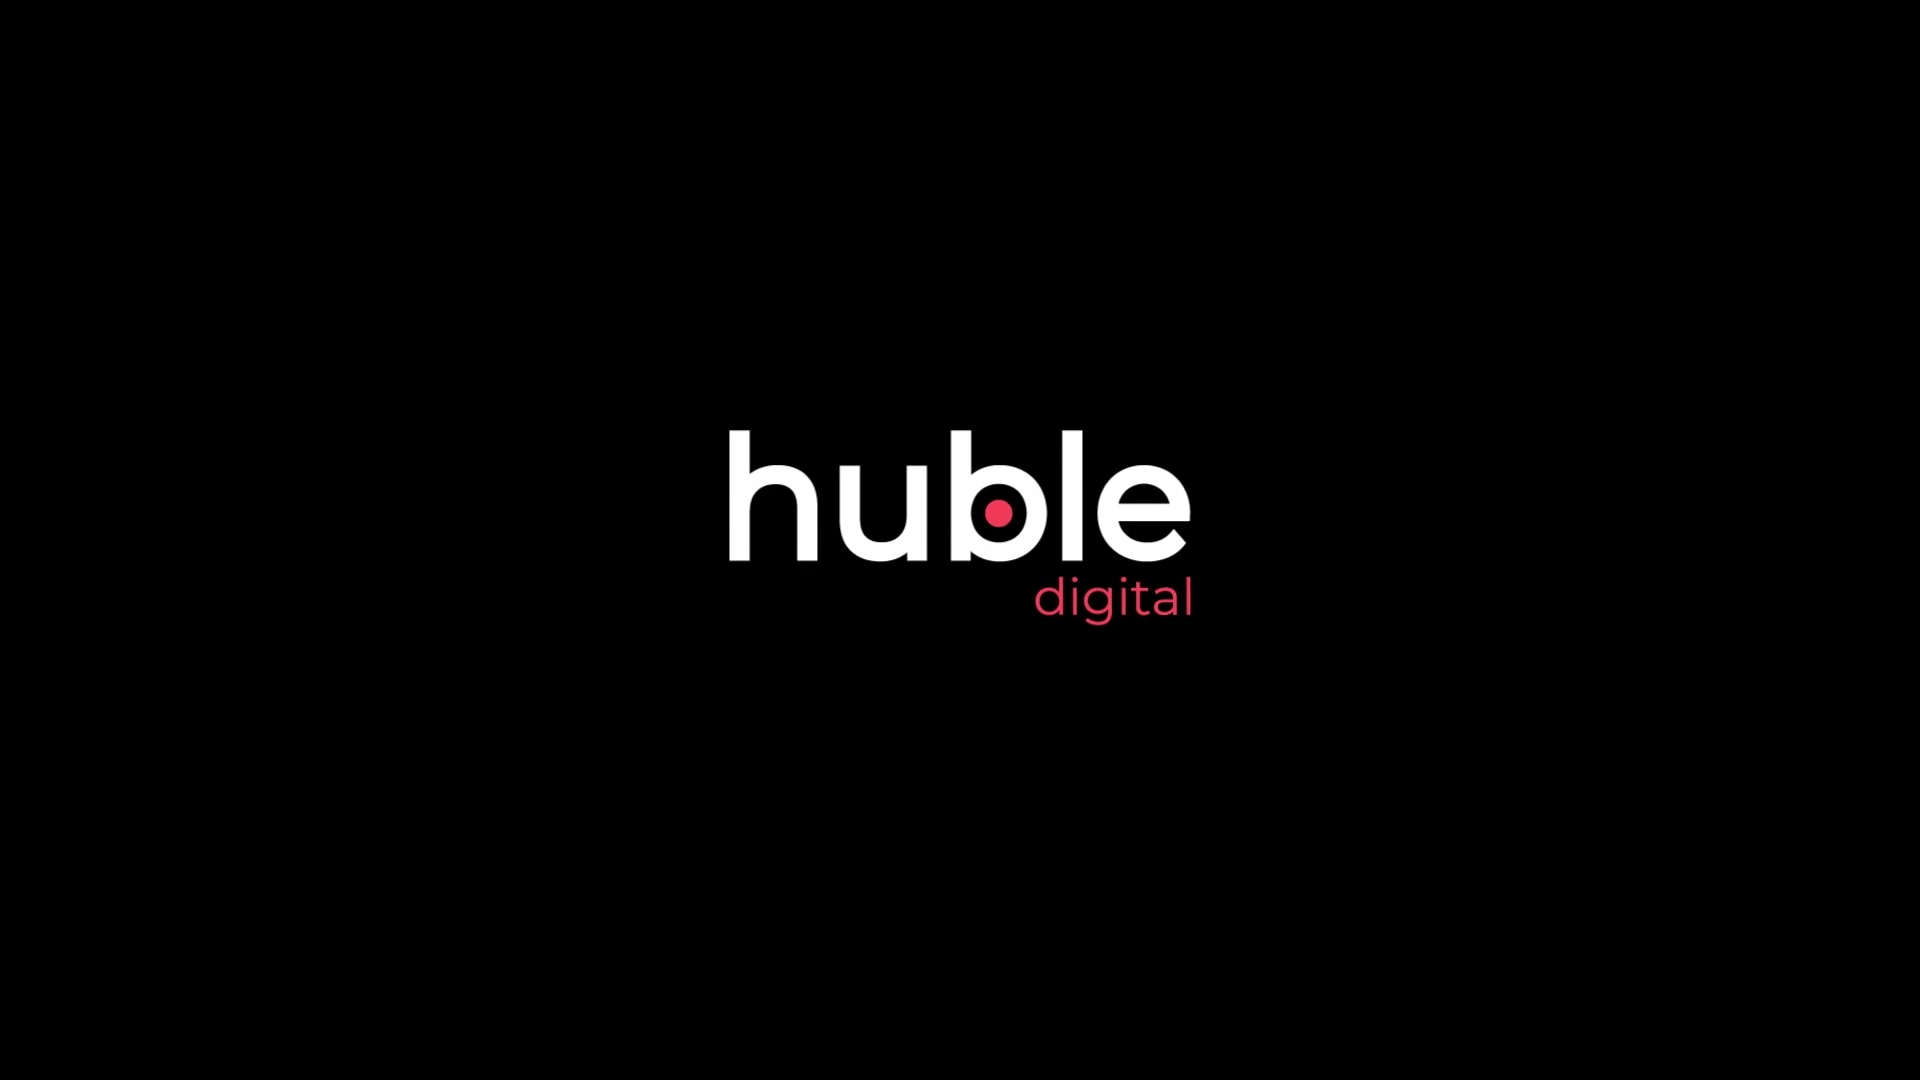 We are Huble Youtube 1080p